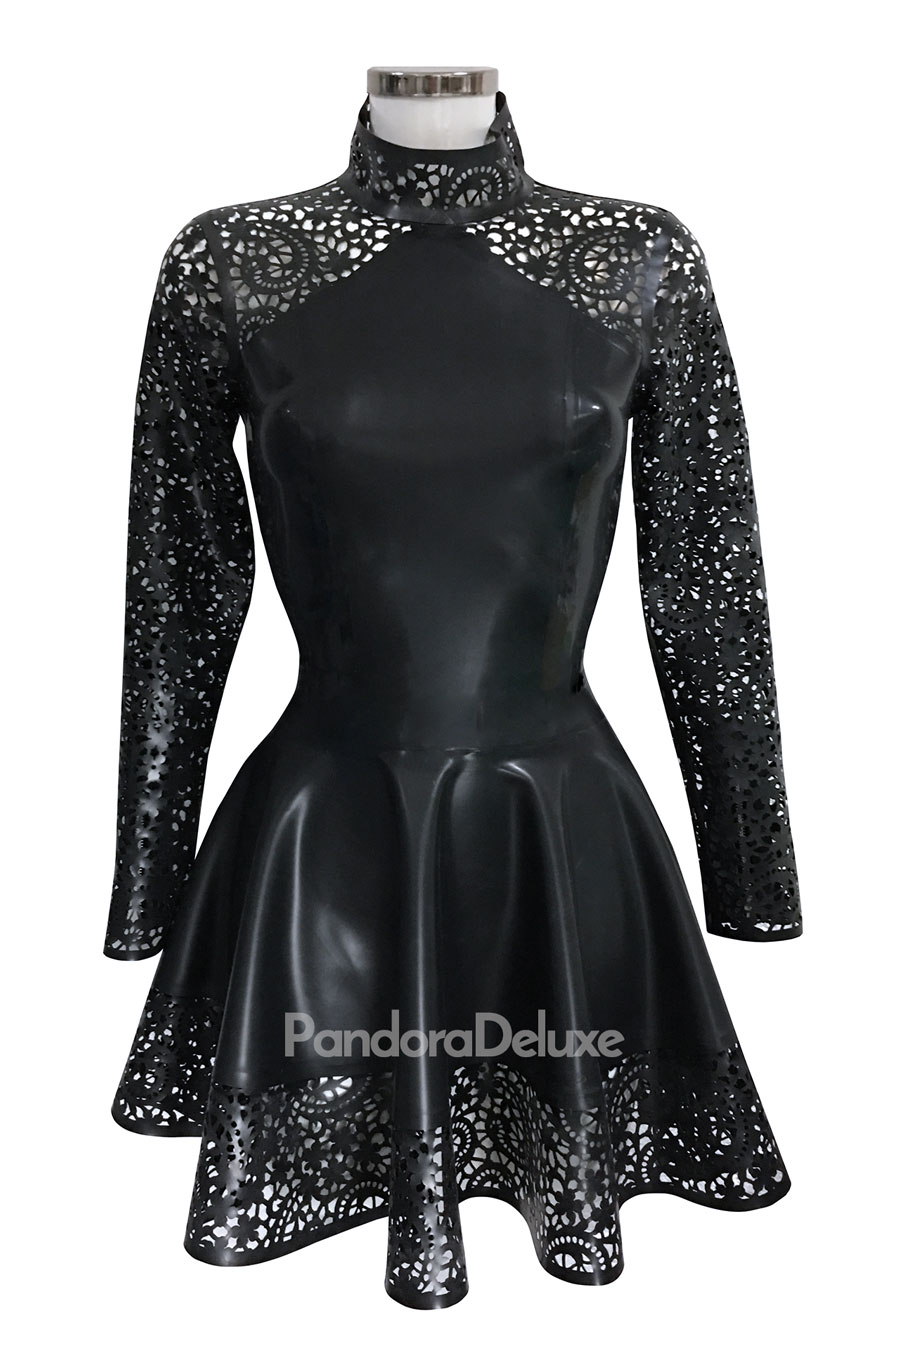 VALENTINA LACE HIGH NECK SKATER DRESS BY PANDORA DELUXE